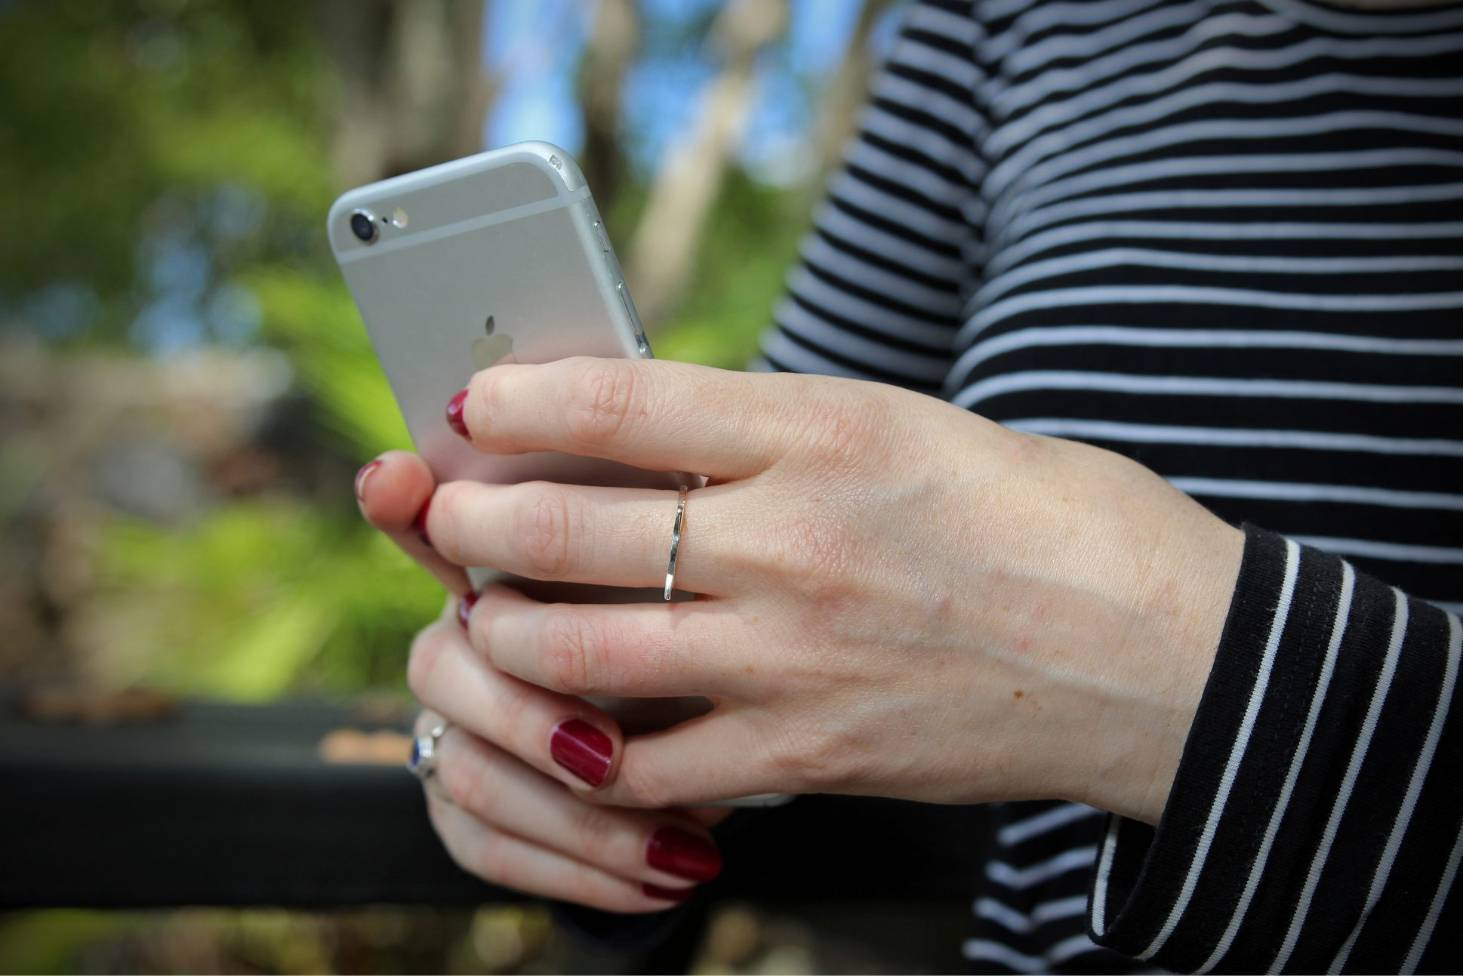 Some Skin Cancer Scanning Apps Fail To Detect Melanoma Cannot Be Relied On Study Stuff Co Nz